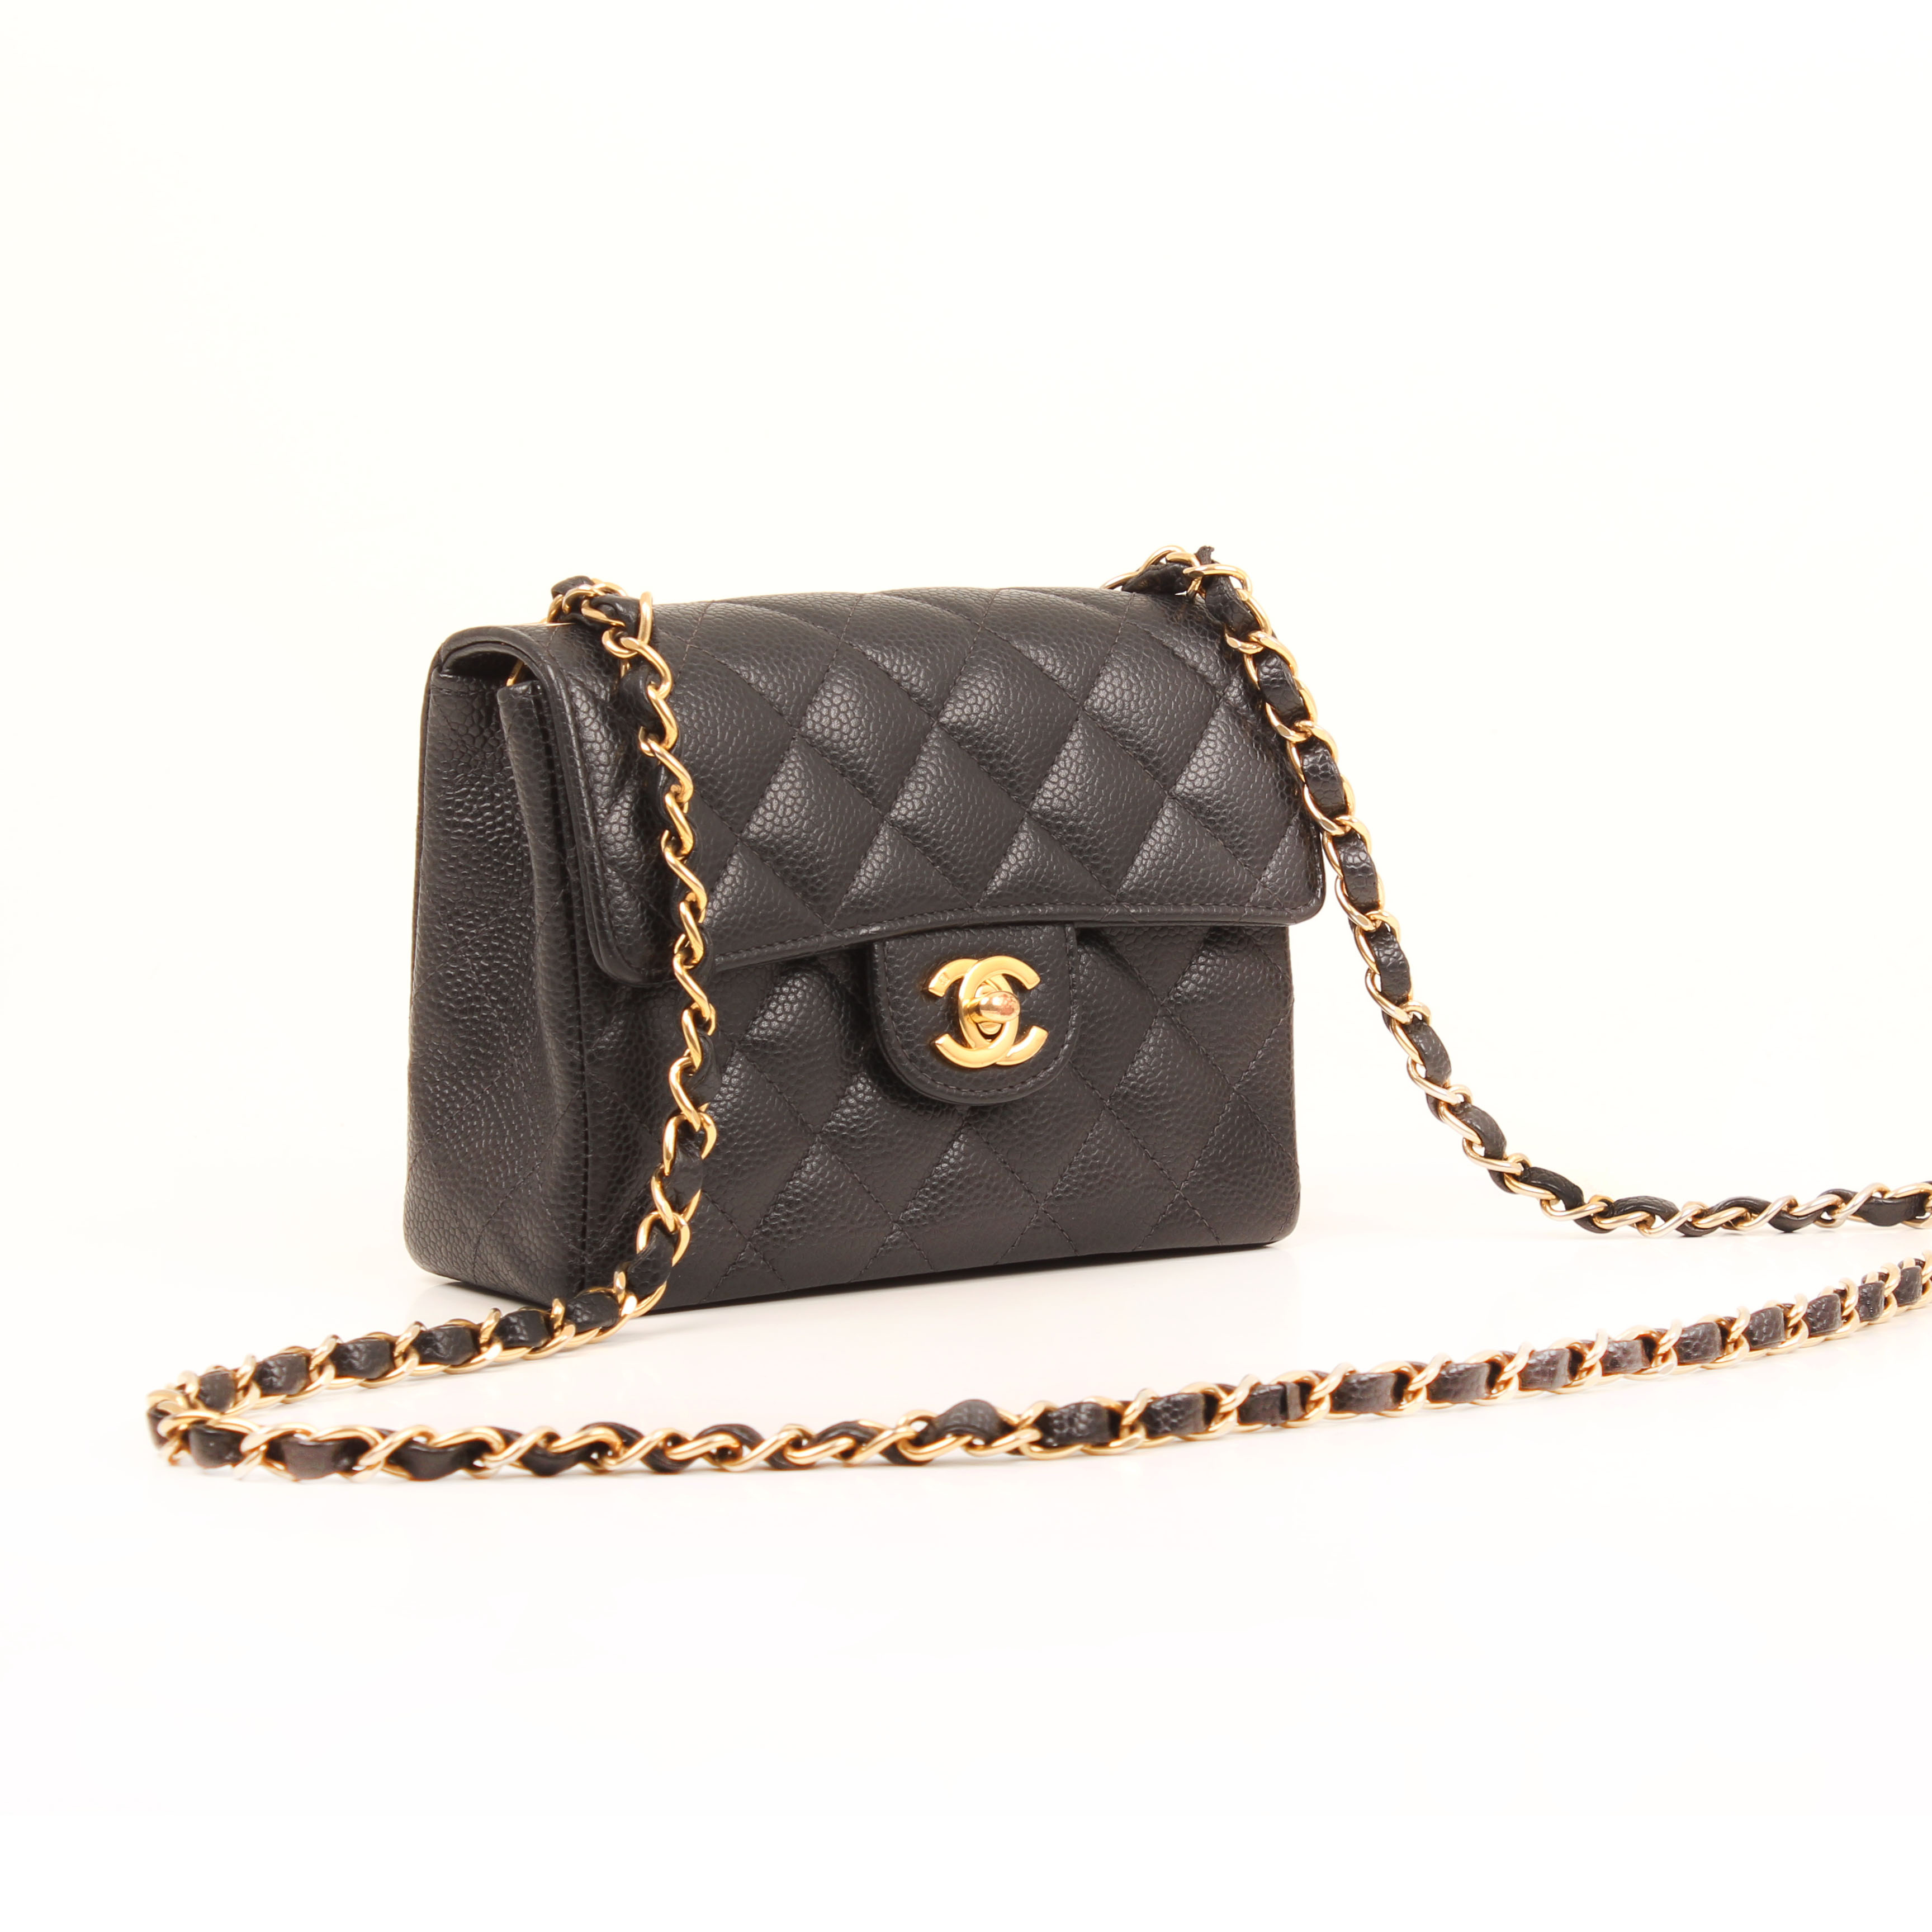 bolso-chanel-timeless-mini-caviar-single-flap-piel-negro-cadena